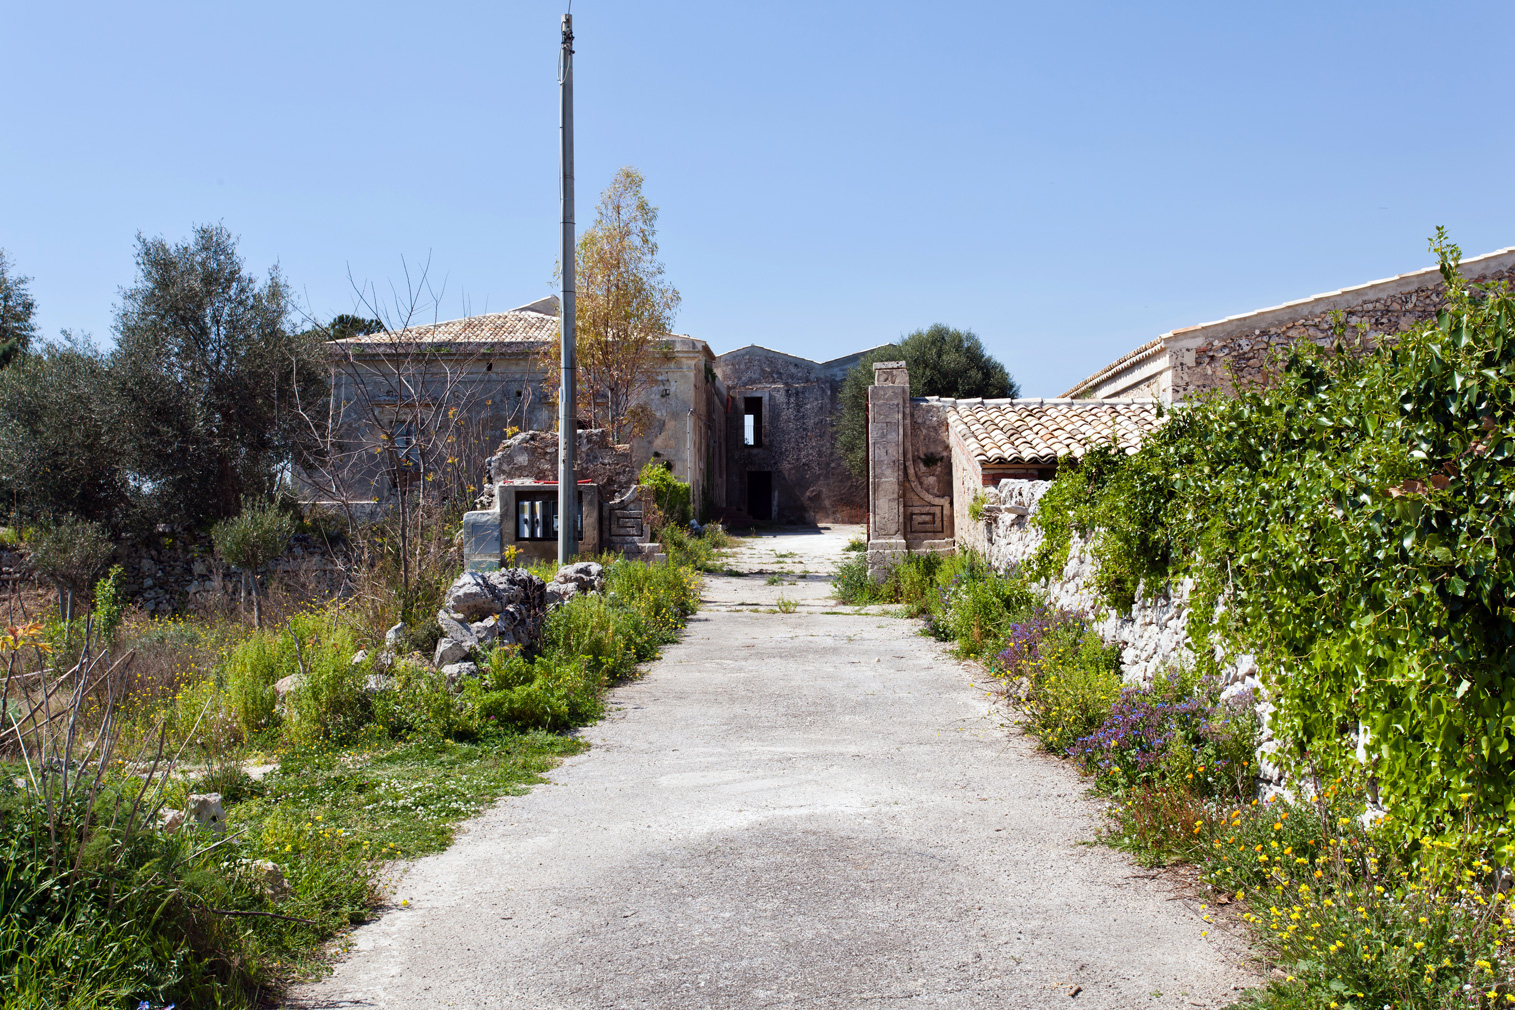 Gorgeous Sicilian estate in need of TLC lists for €850k